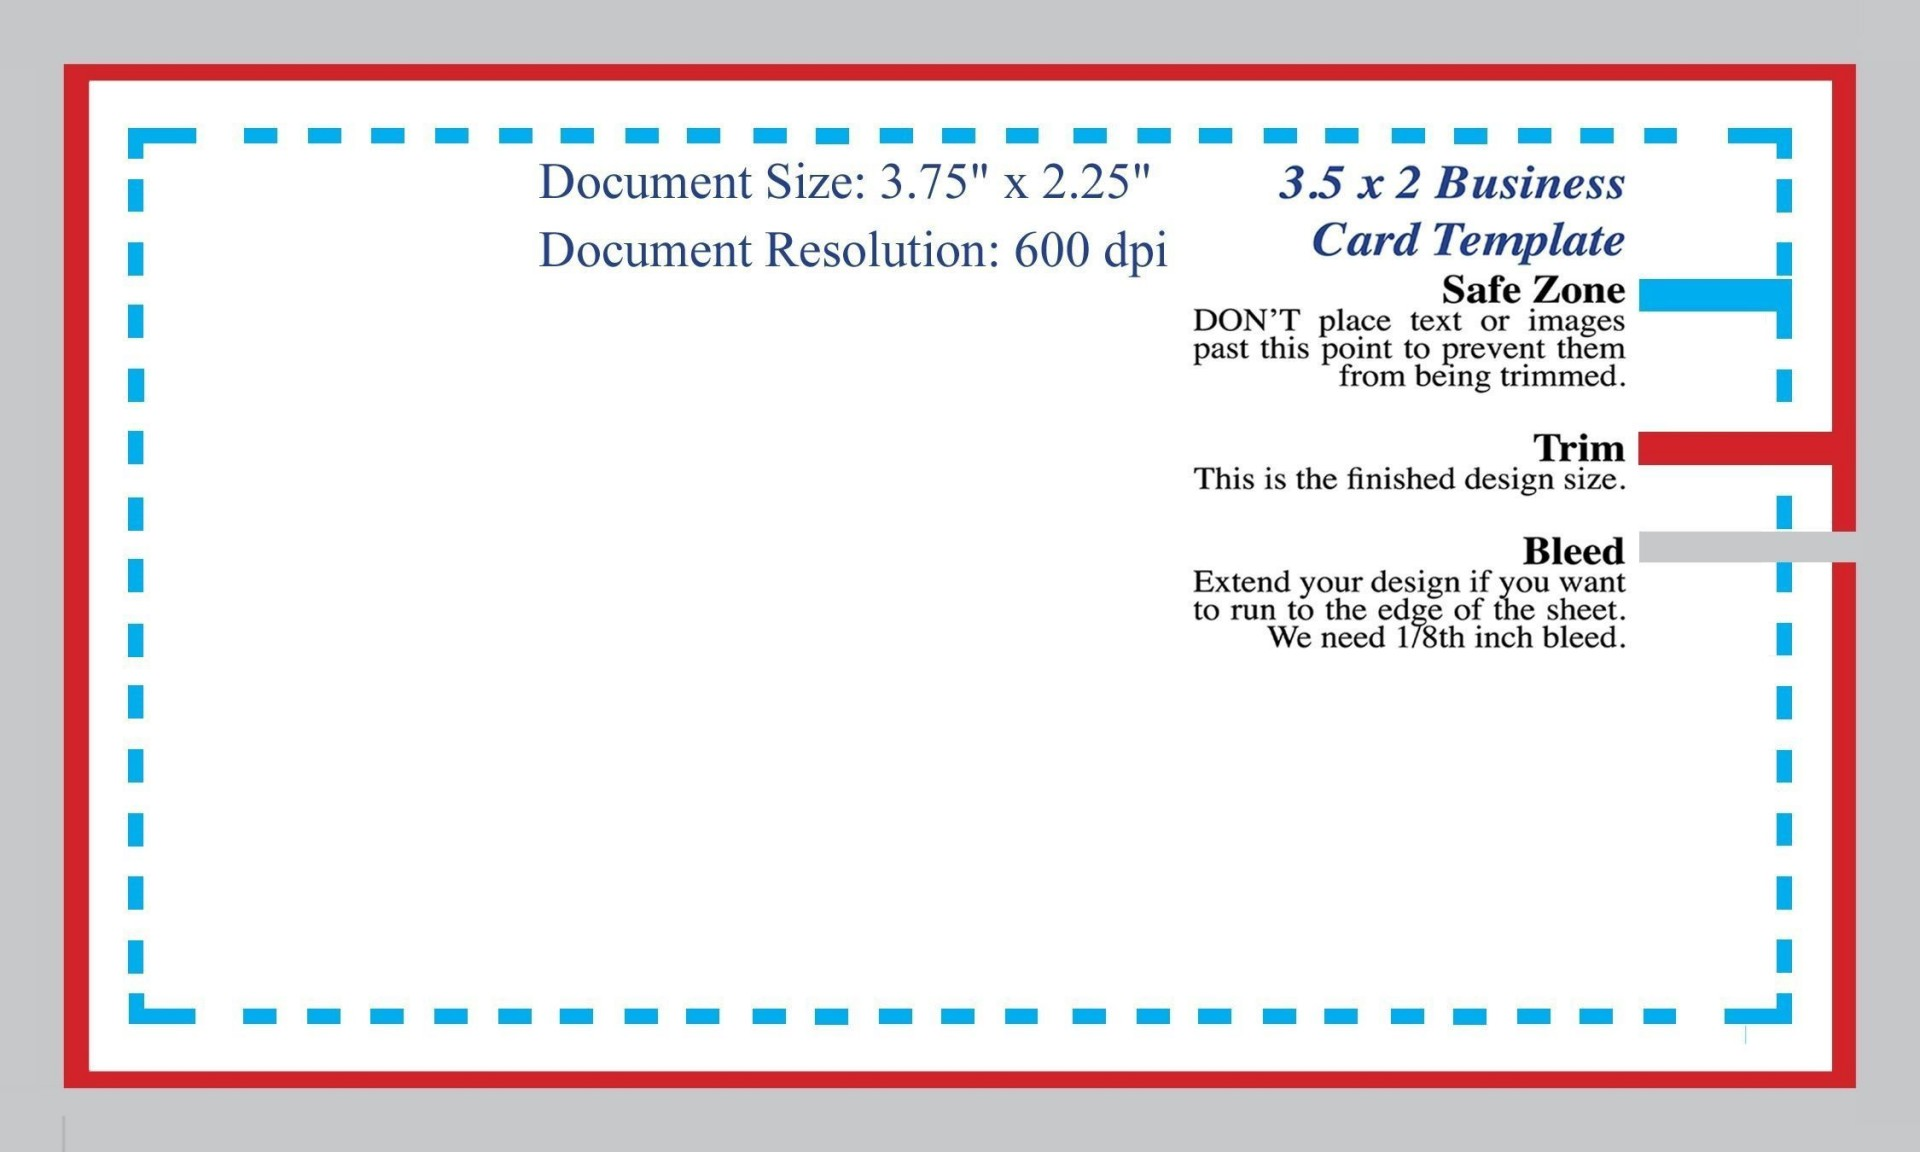 001 Incredible Blank Busines Card Template Photoshop Image  Free Download Psd1920